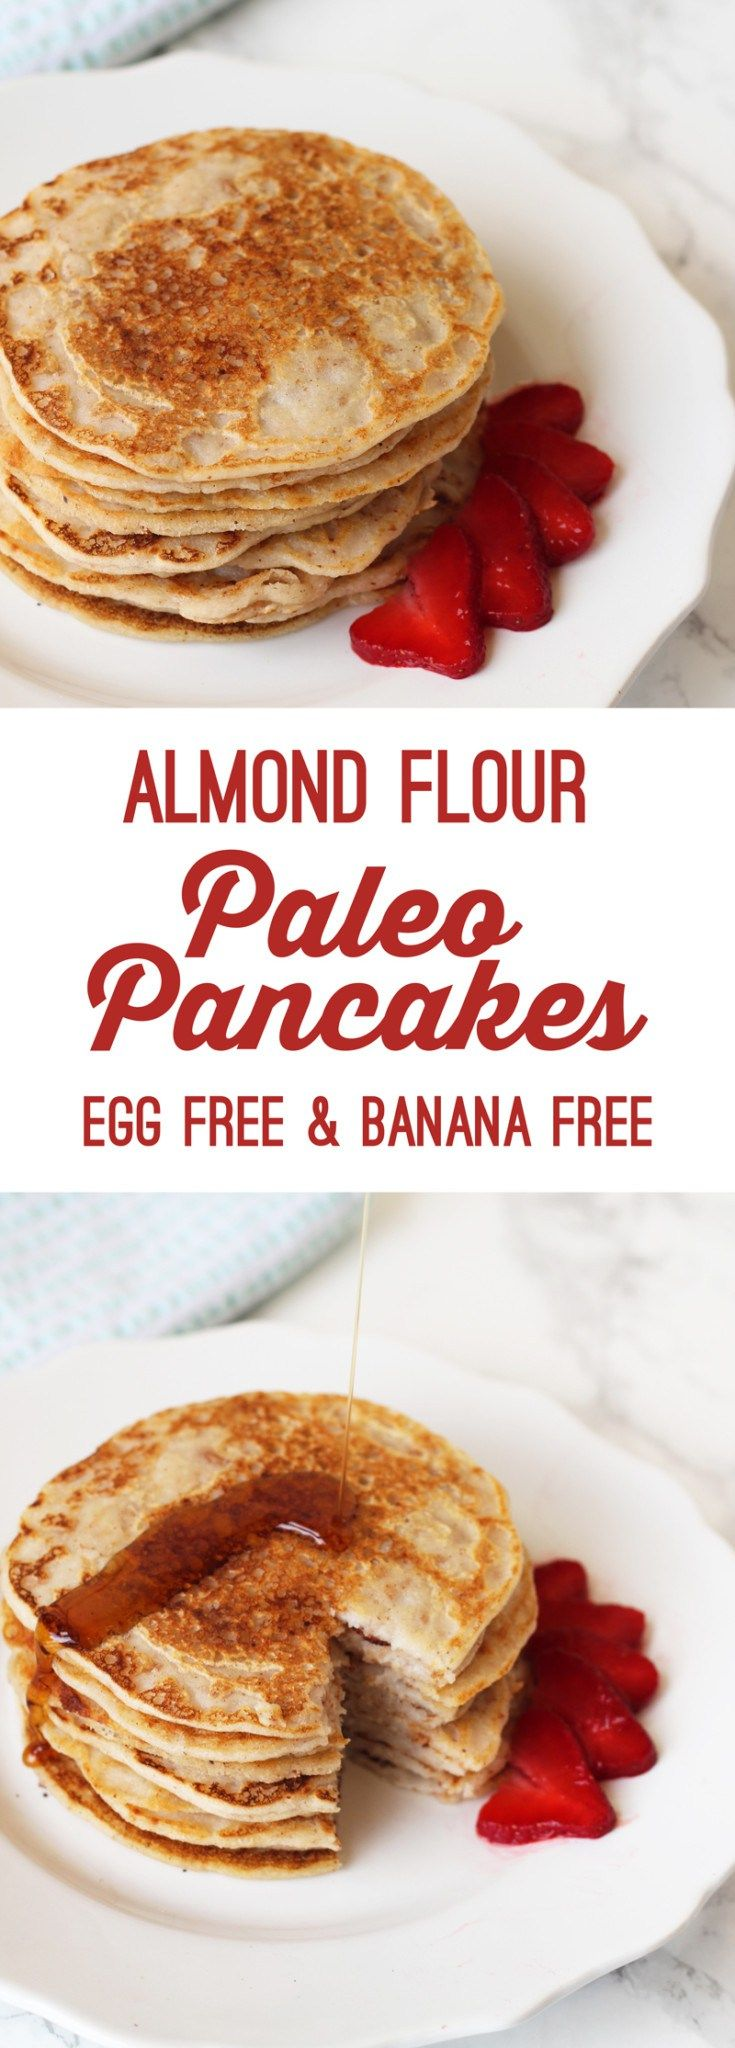 Almond Flour Paleo Pancakes (Egg free and banana free)